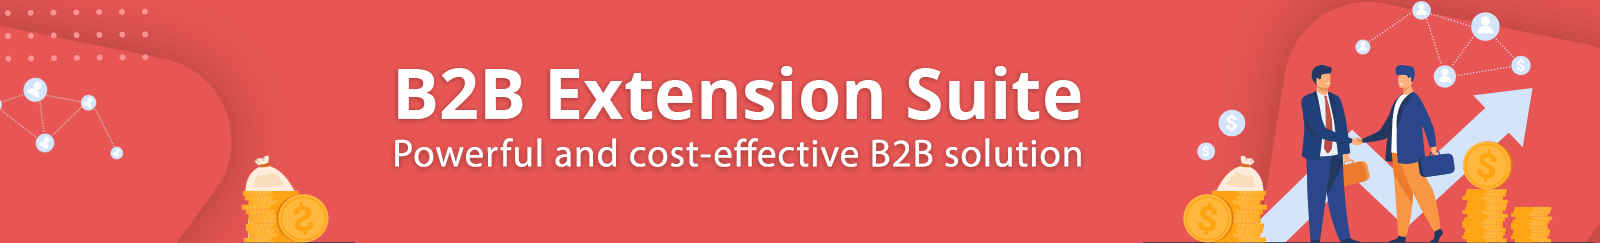 B2B Extension Suite | Powerful and cost-effective solution for B2B eCommerce